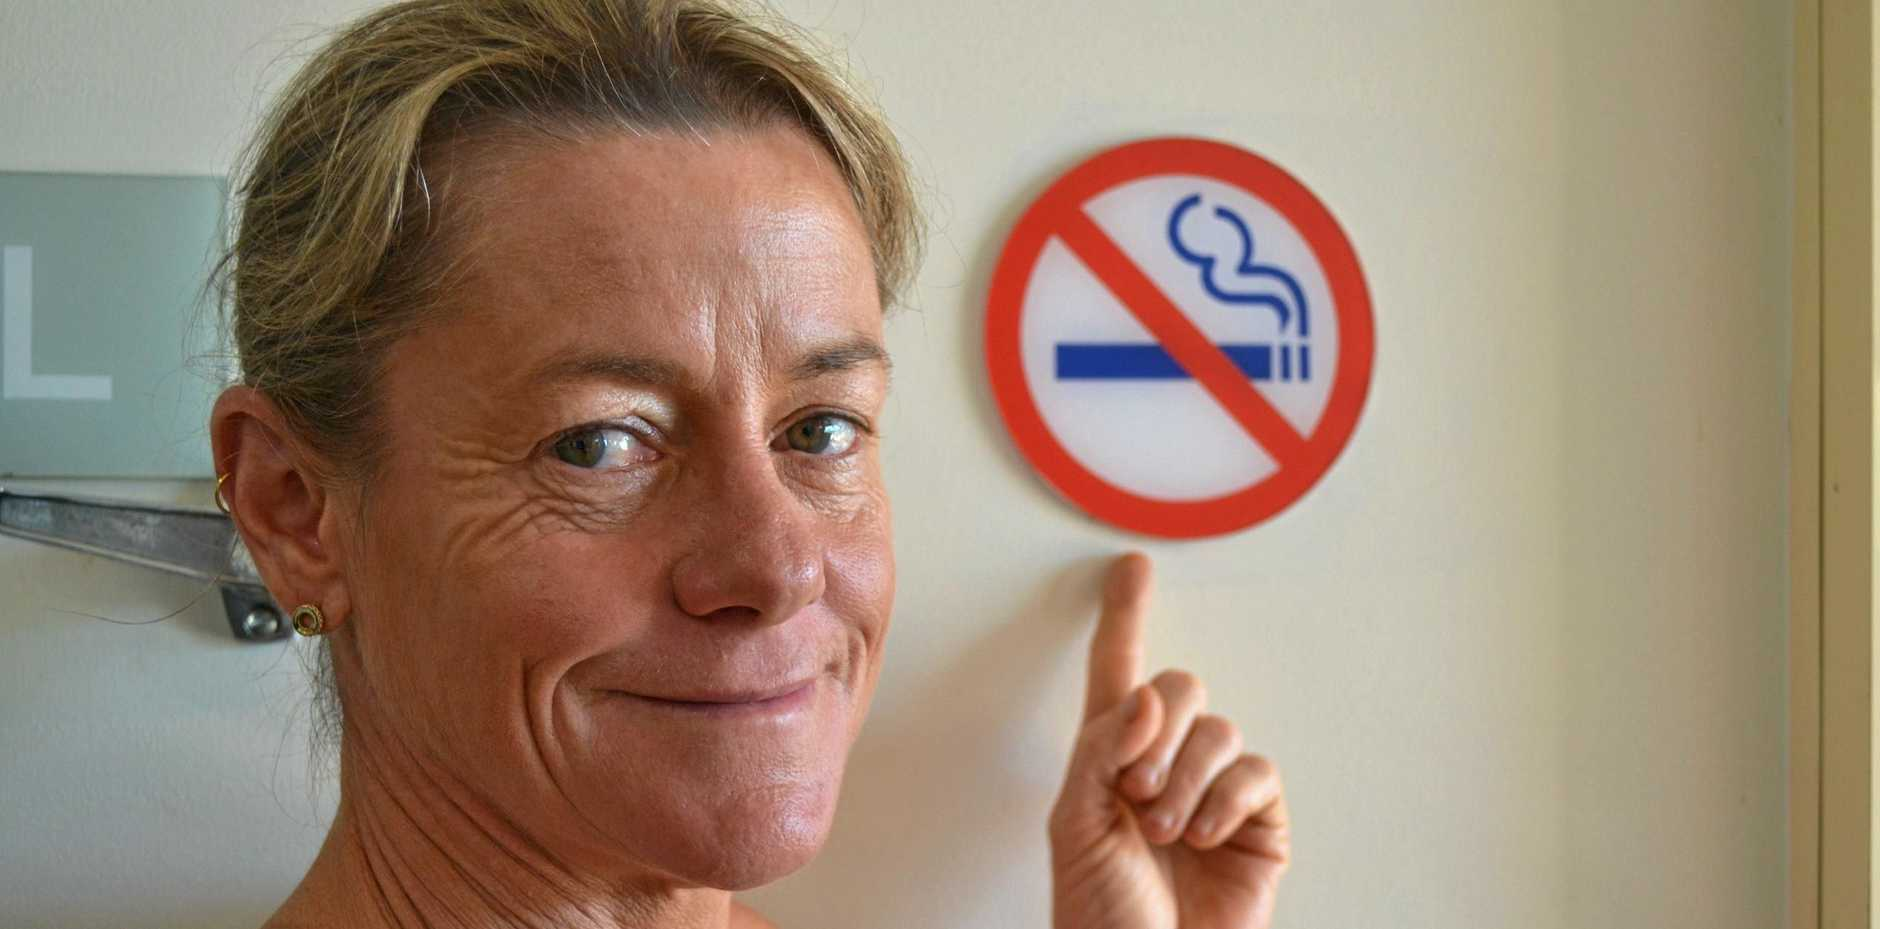 SMOKING TRIUMPH: Melissa Caletti successfully quit smoking after being a 50-a-day smoker for more than 20 years.